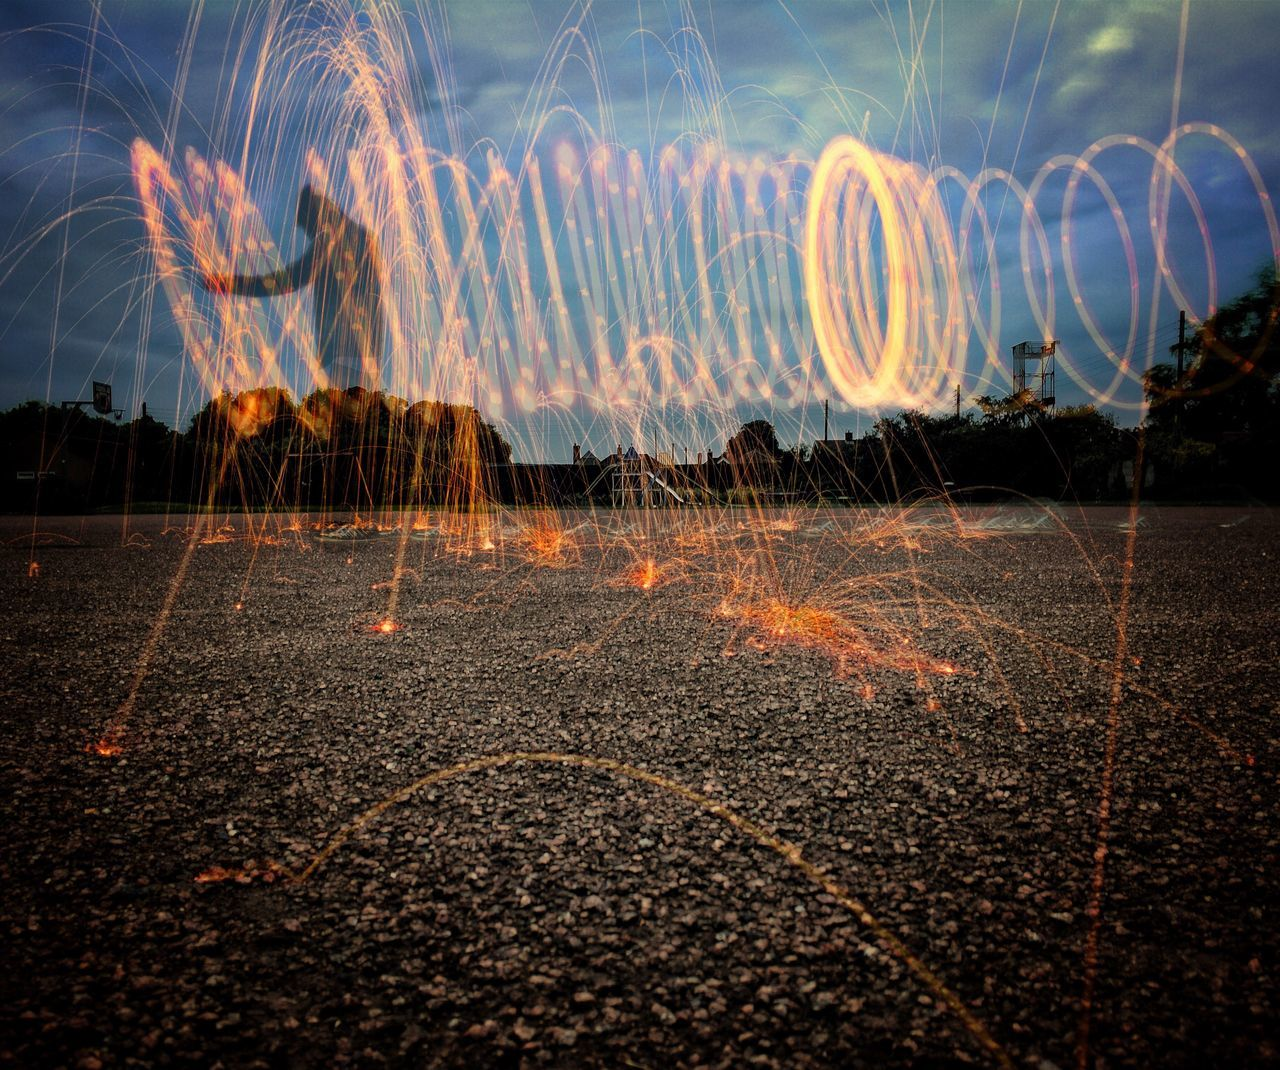 First steel wool attempt. Night Nightphotography Light Trail Outdoors Illuminated Nature Lighttrails Lightpainting Steelwool IPhoneography Iphonephotography Streetphotography